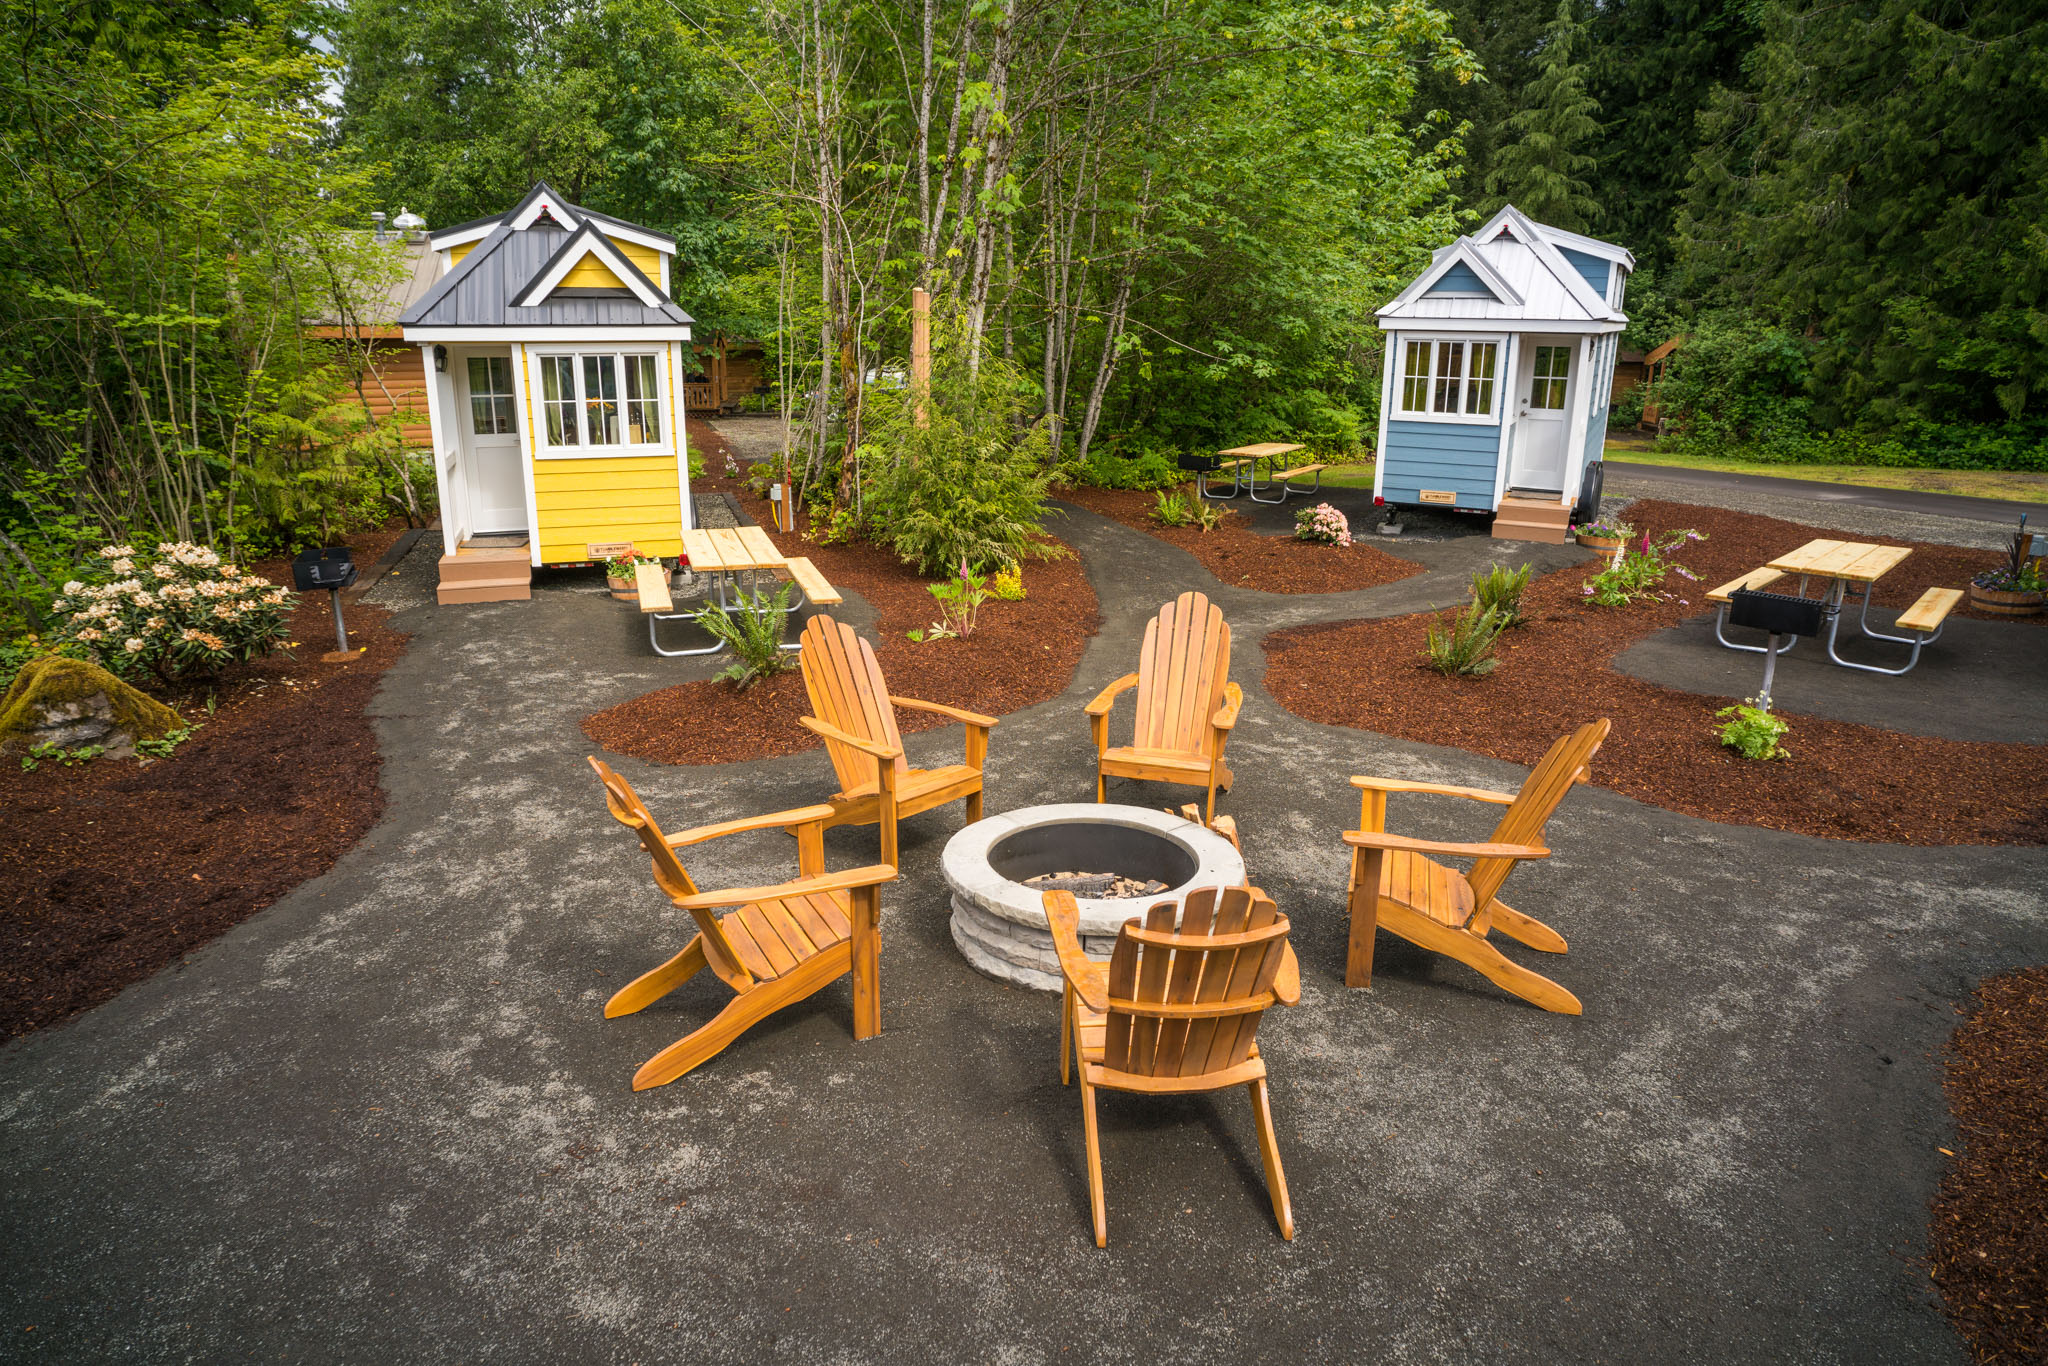 Pictures Of Tiny Houses: How To Downsize To A Tiny House: Advices From Tiny House